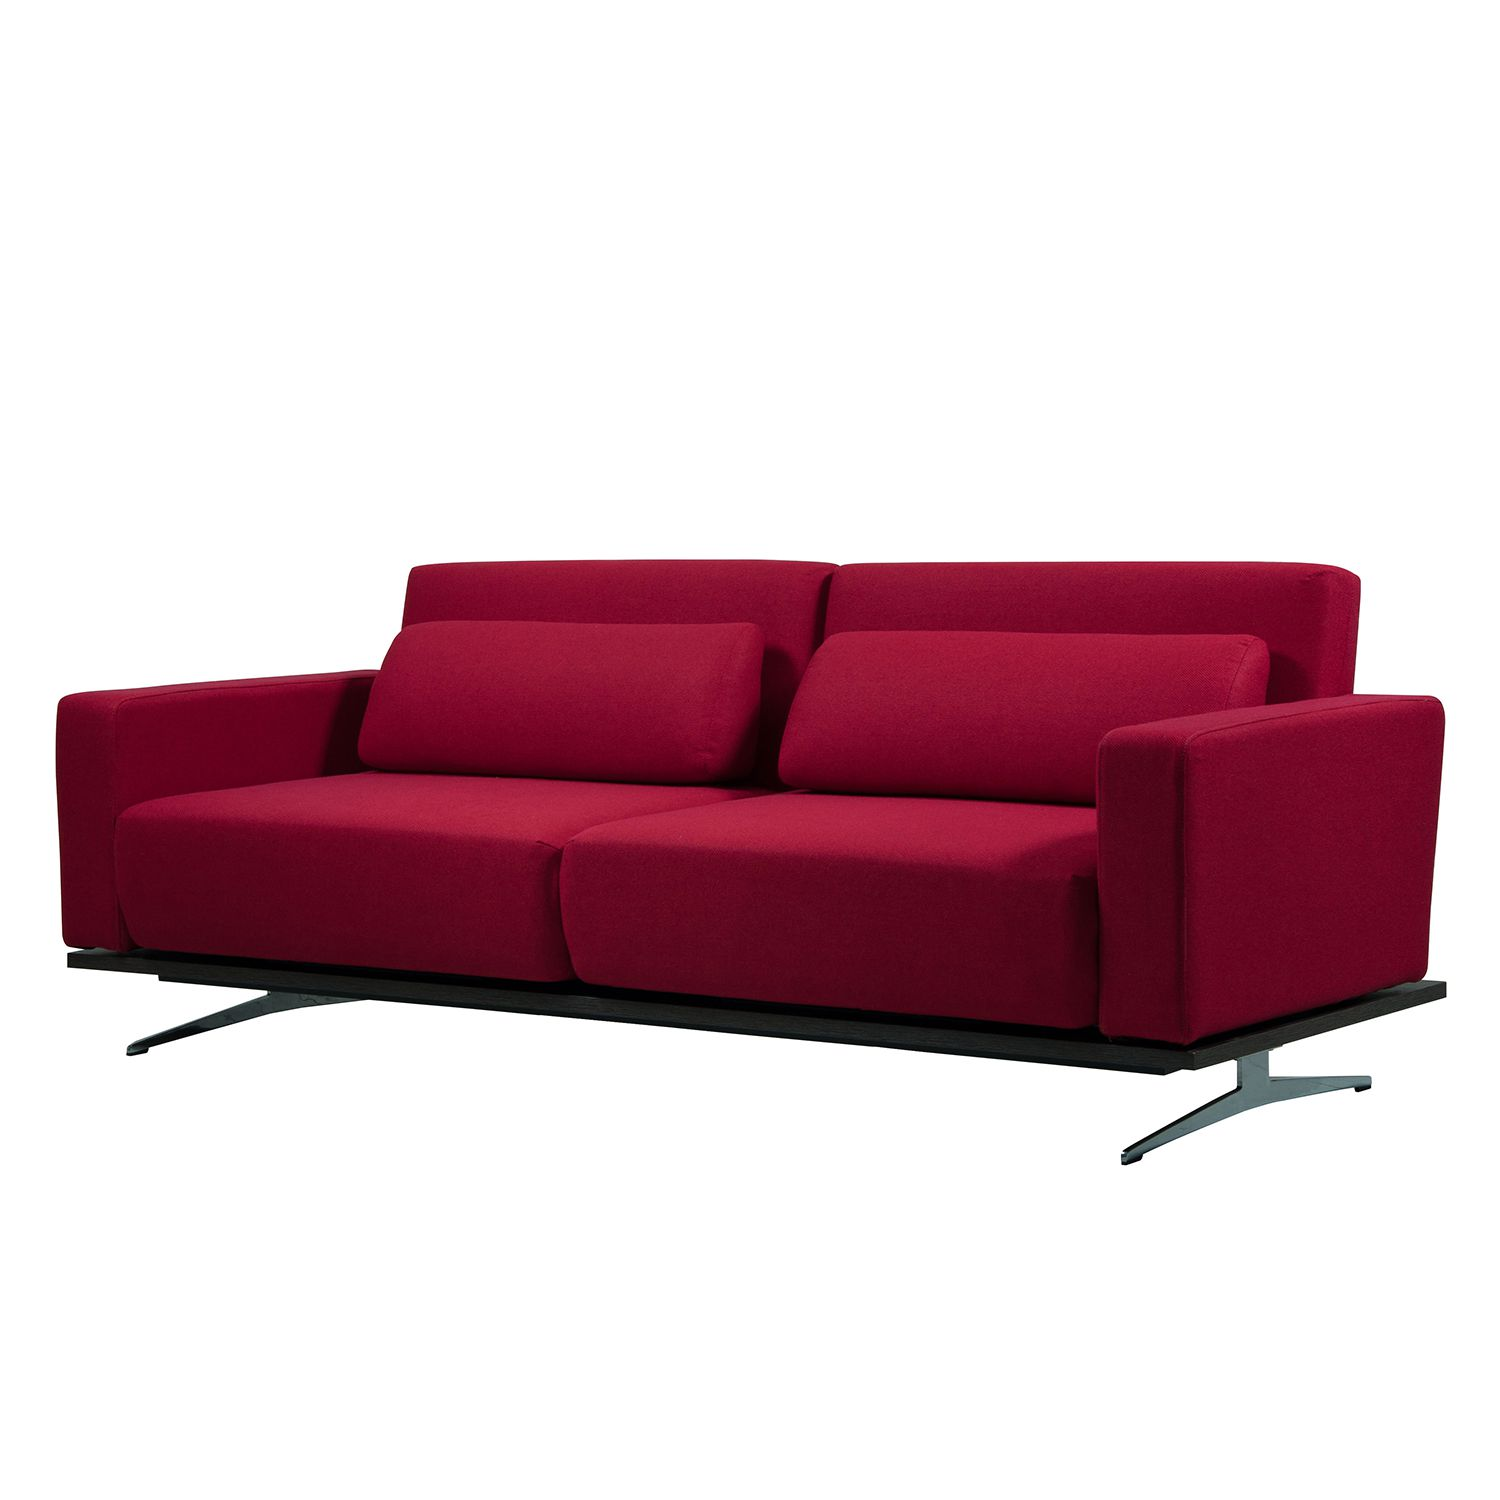 Schlafsofa Copperfield Schlafsofa Copperfield I - Webstoff - Stoff Bora Rot ...